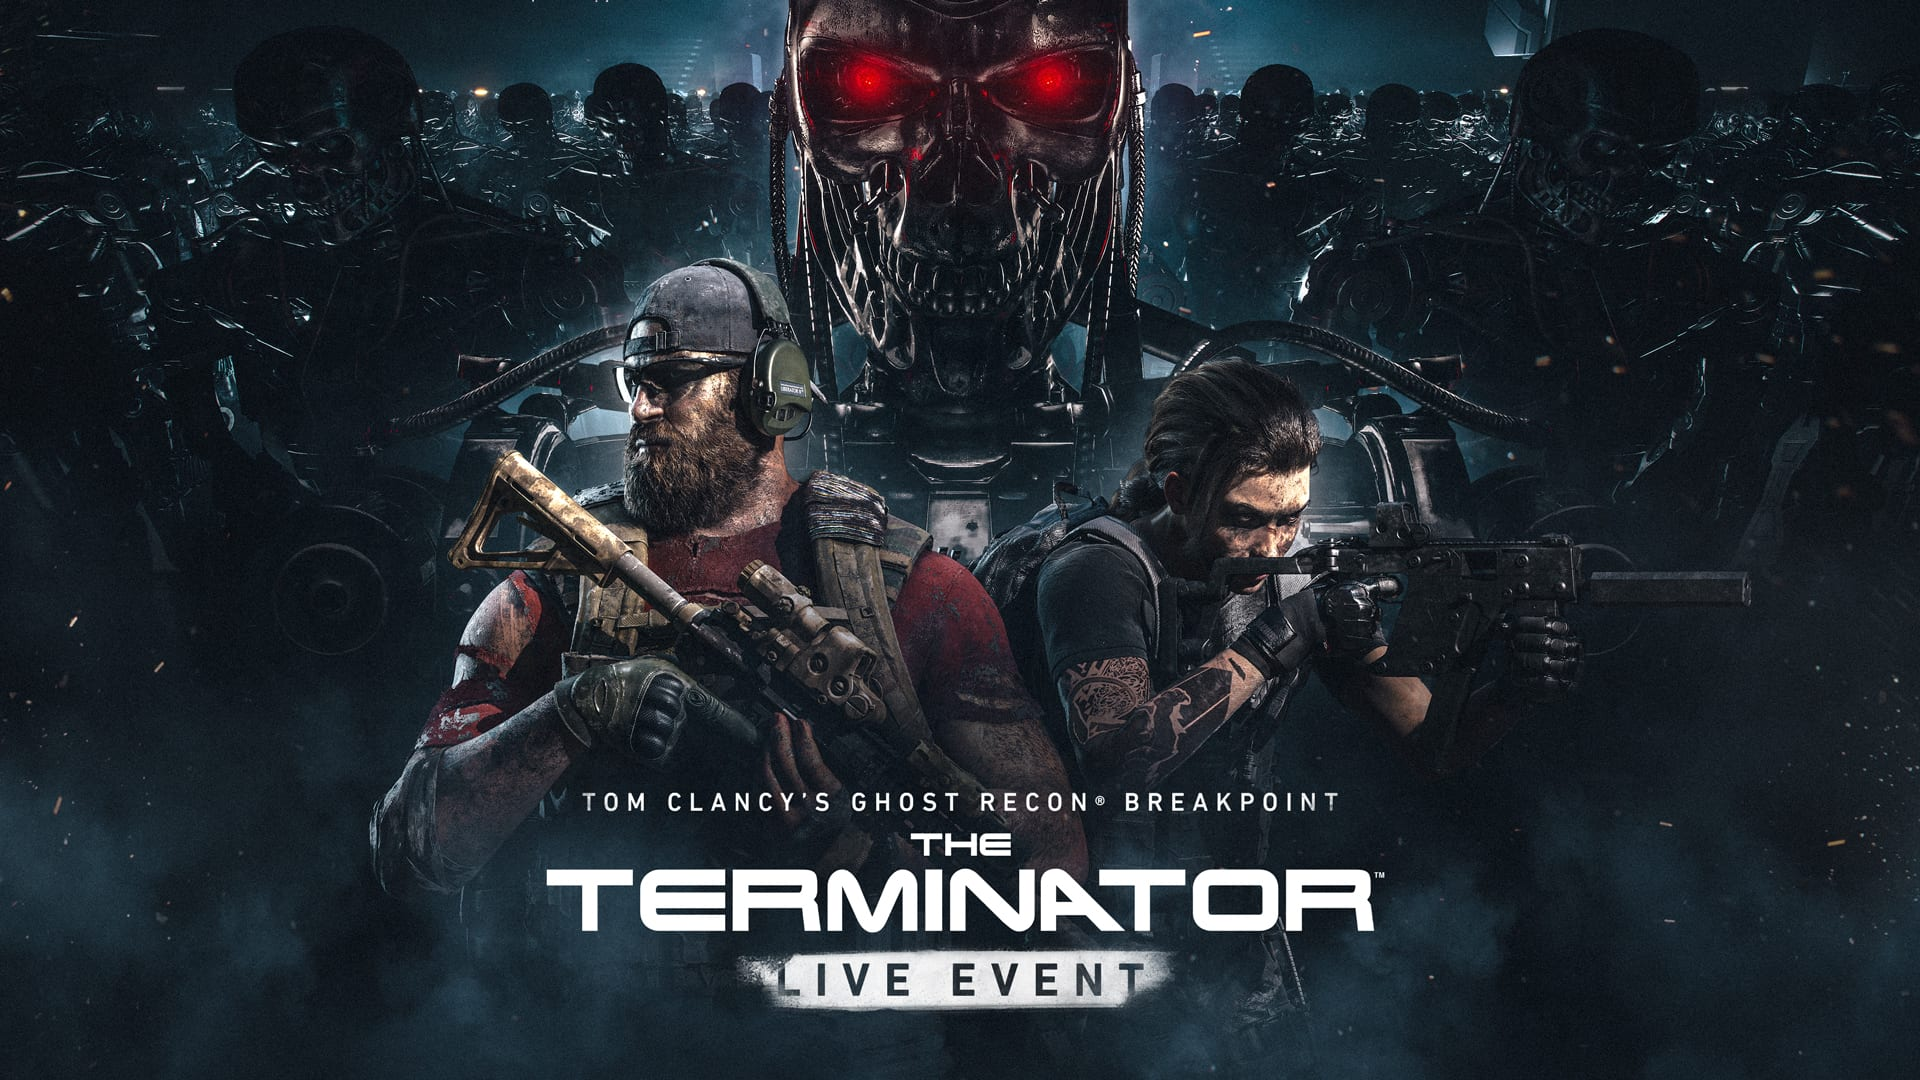 The Terminator Invades Ghost Recon Breakpoint